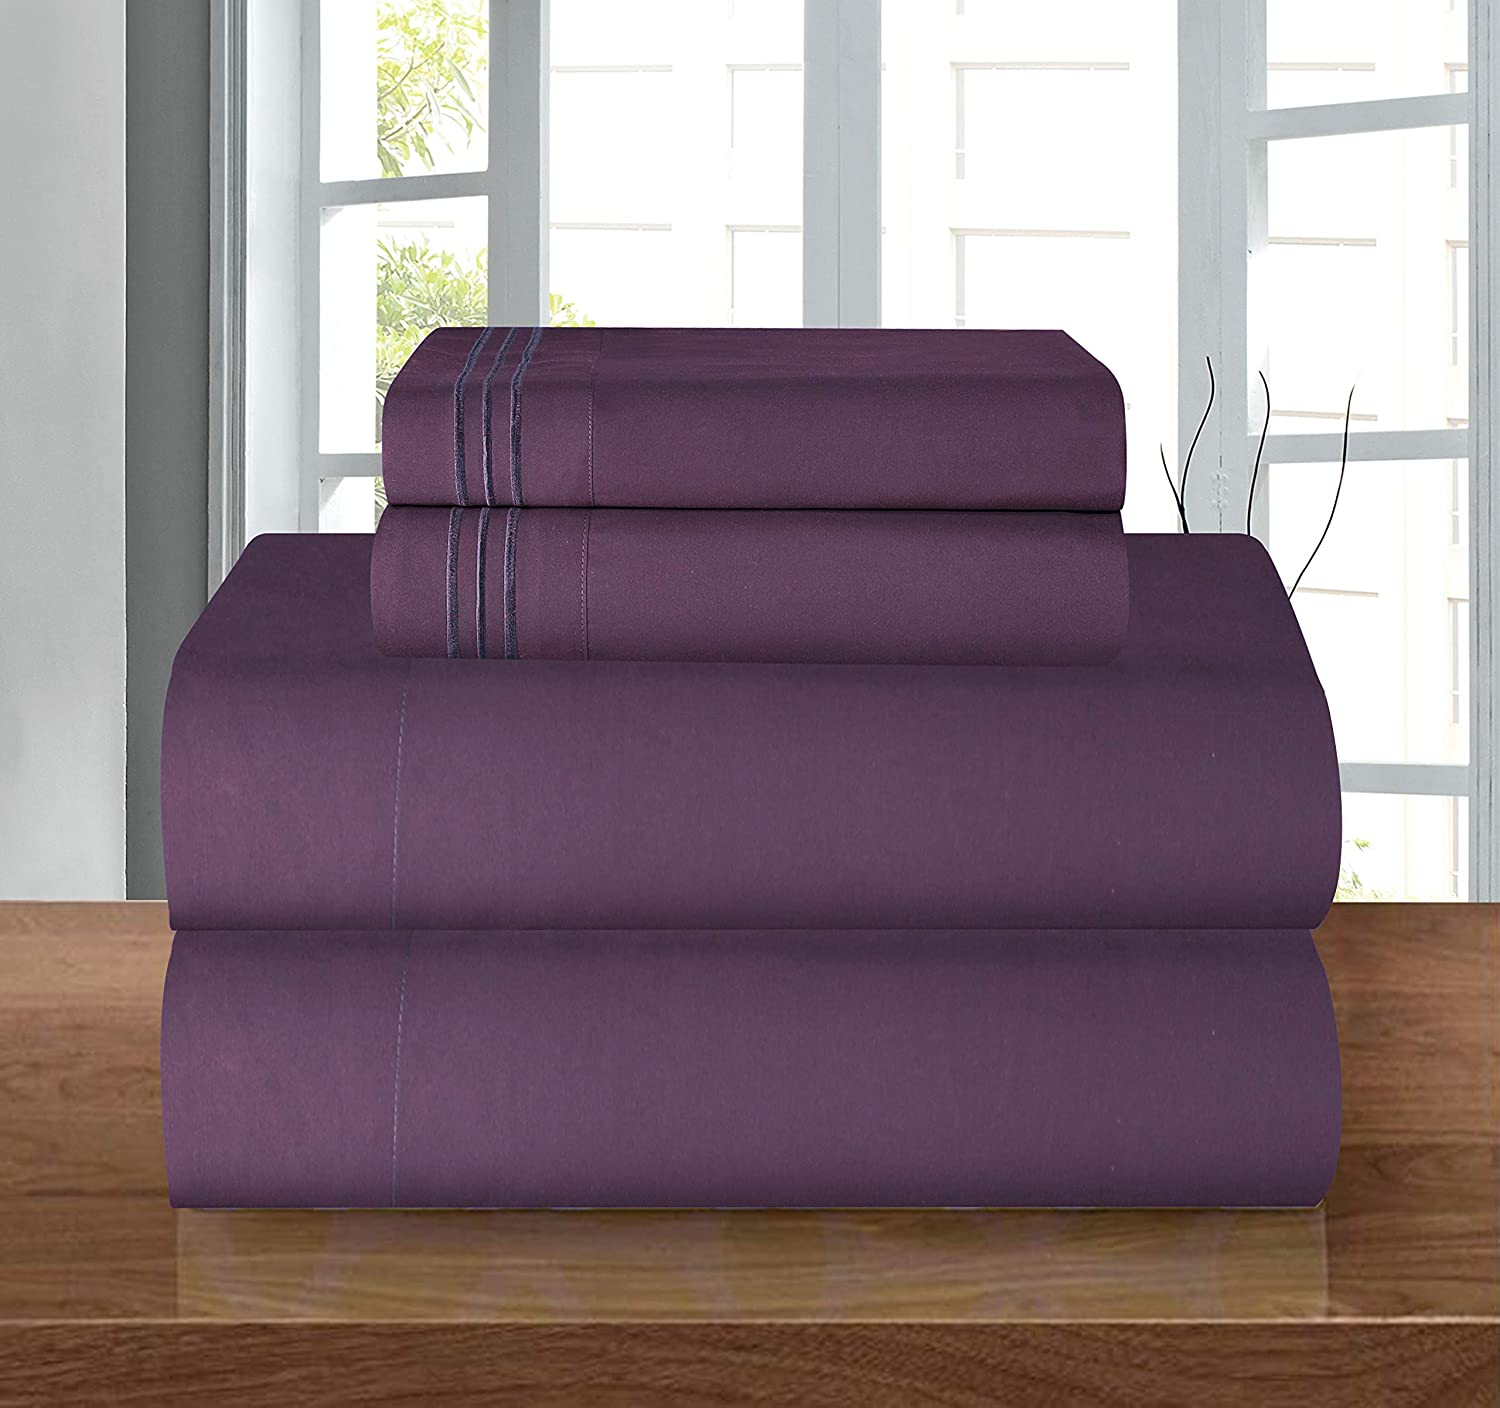 Luxurious Soft 1500 Thread Count Egyptian Purple Bed Sheet